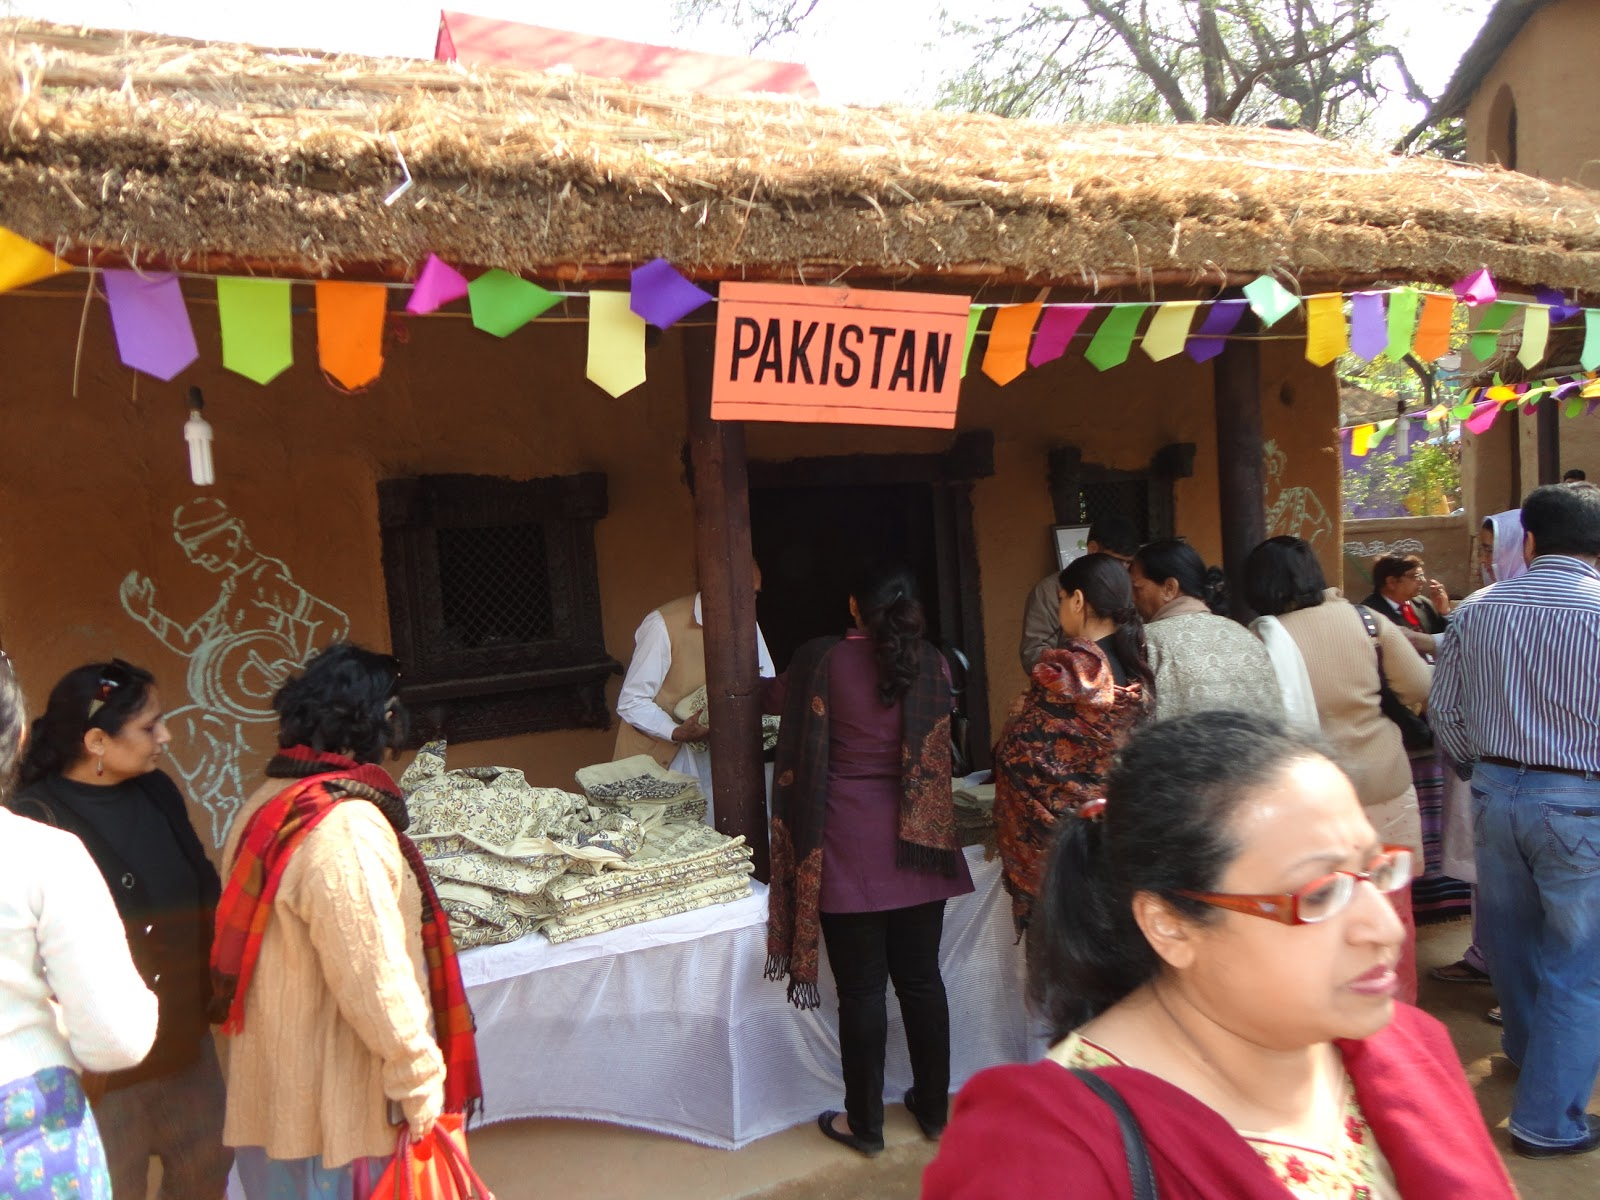 Pakistan Stall at Surajkund Crafts Mela,India